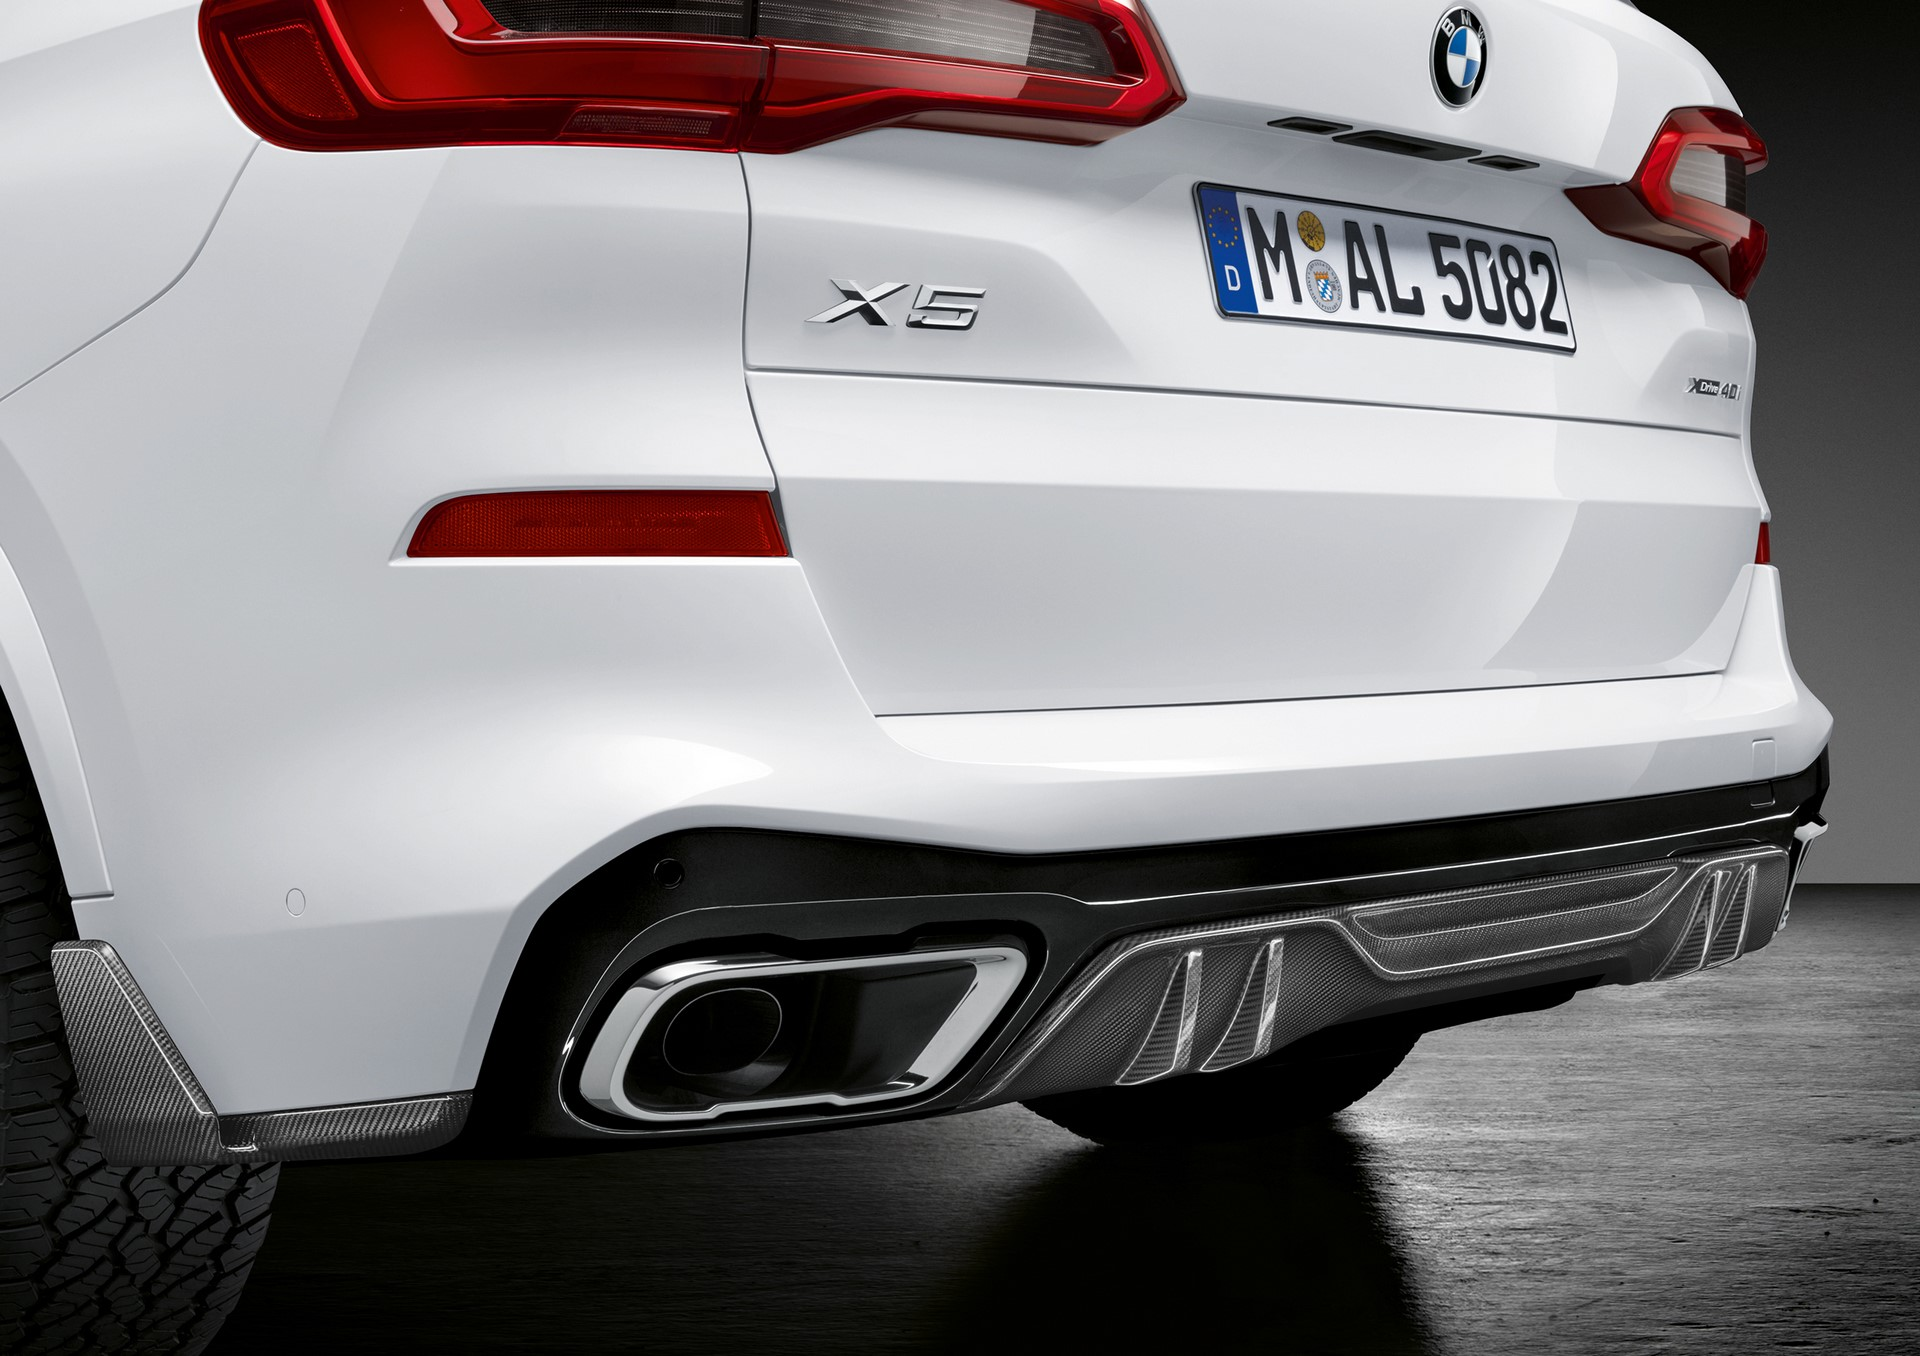 BMW X5 with M Performance parts (4)